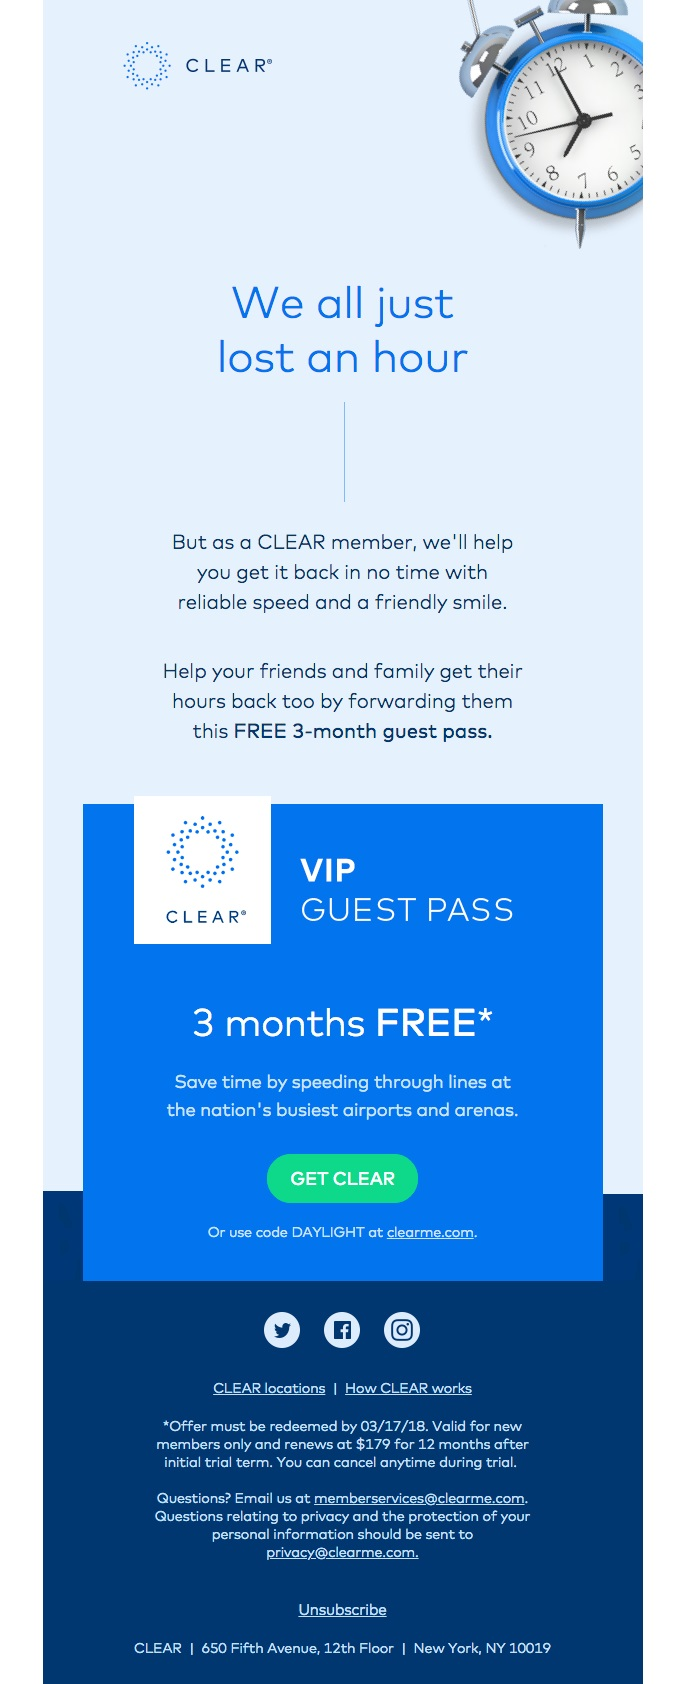 CLEAR's email example from its drip email marketing campaign